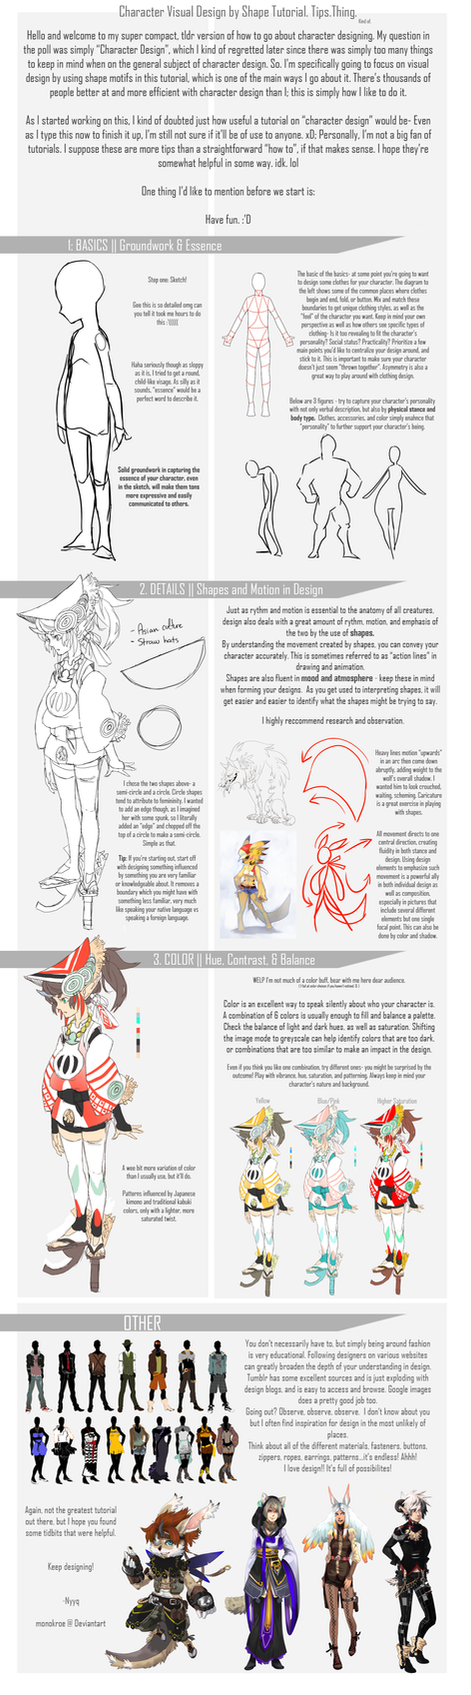 Character Design Basics : Basic character design by shape monokroe on deviantart